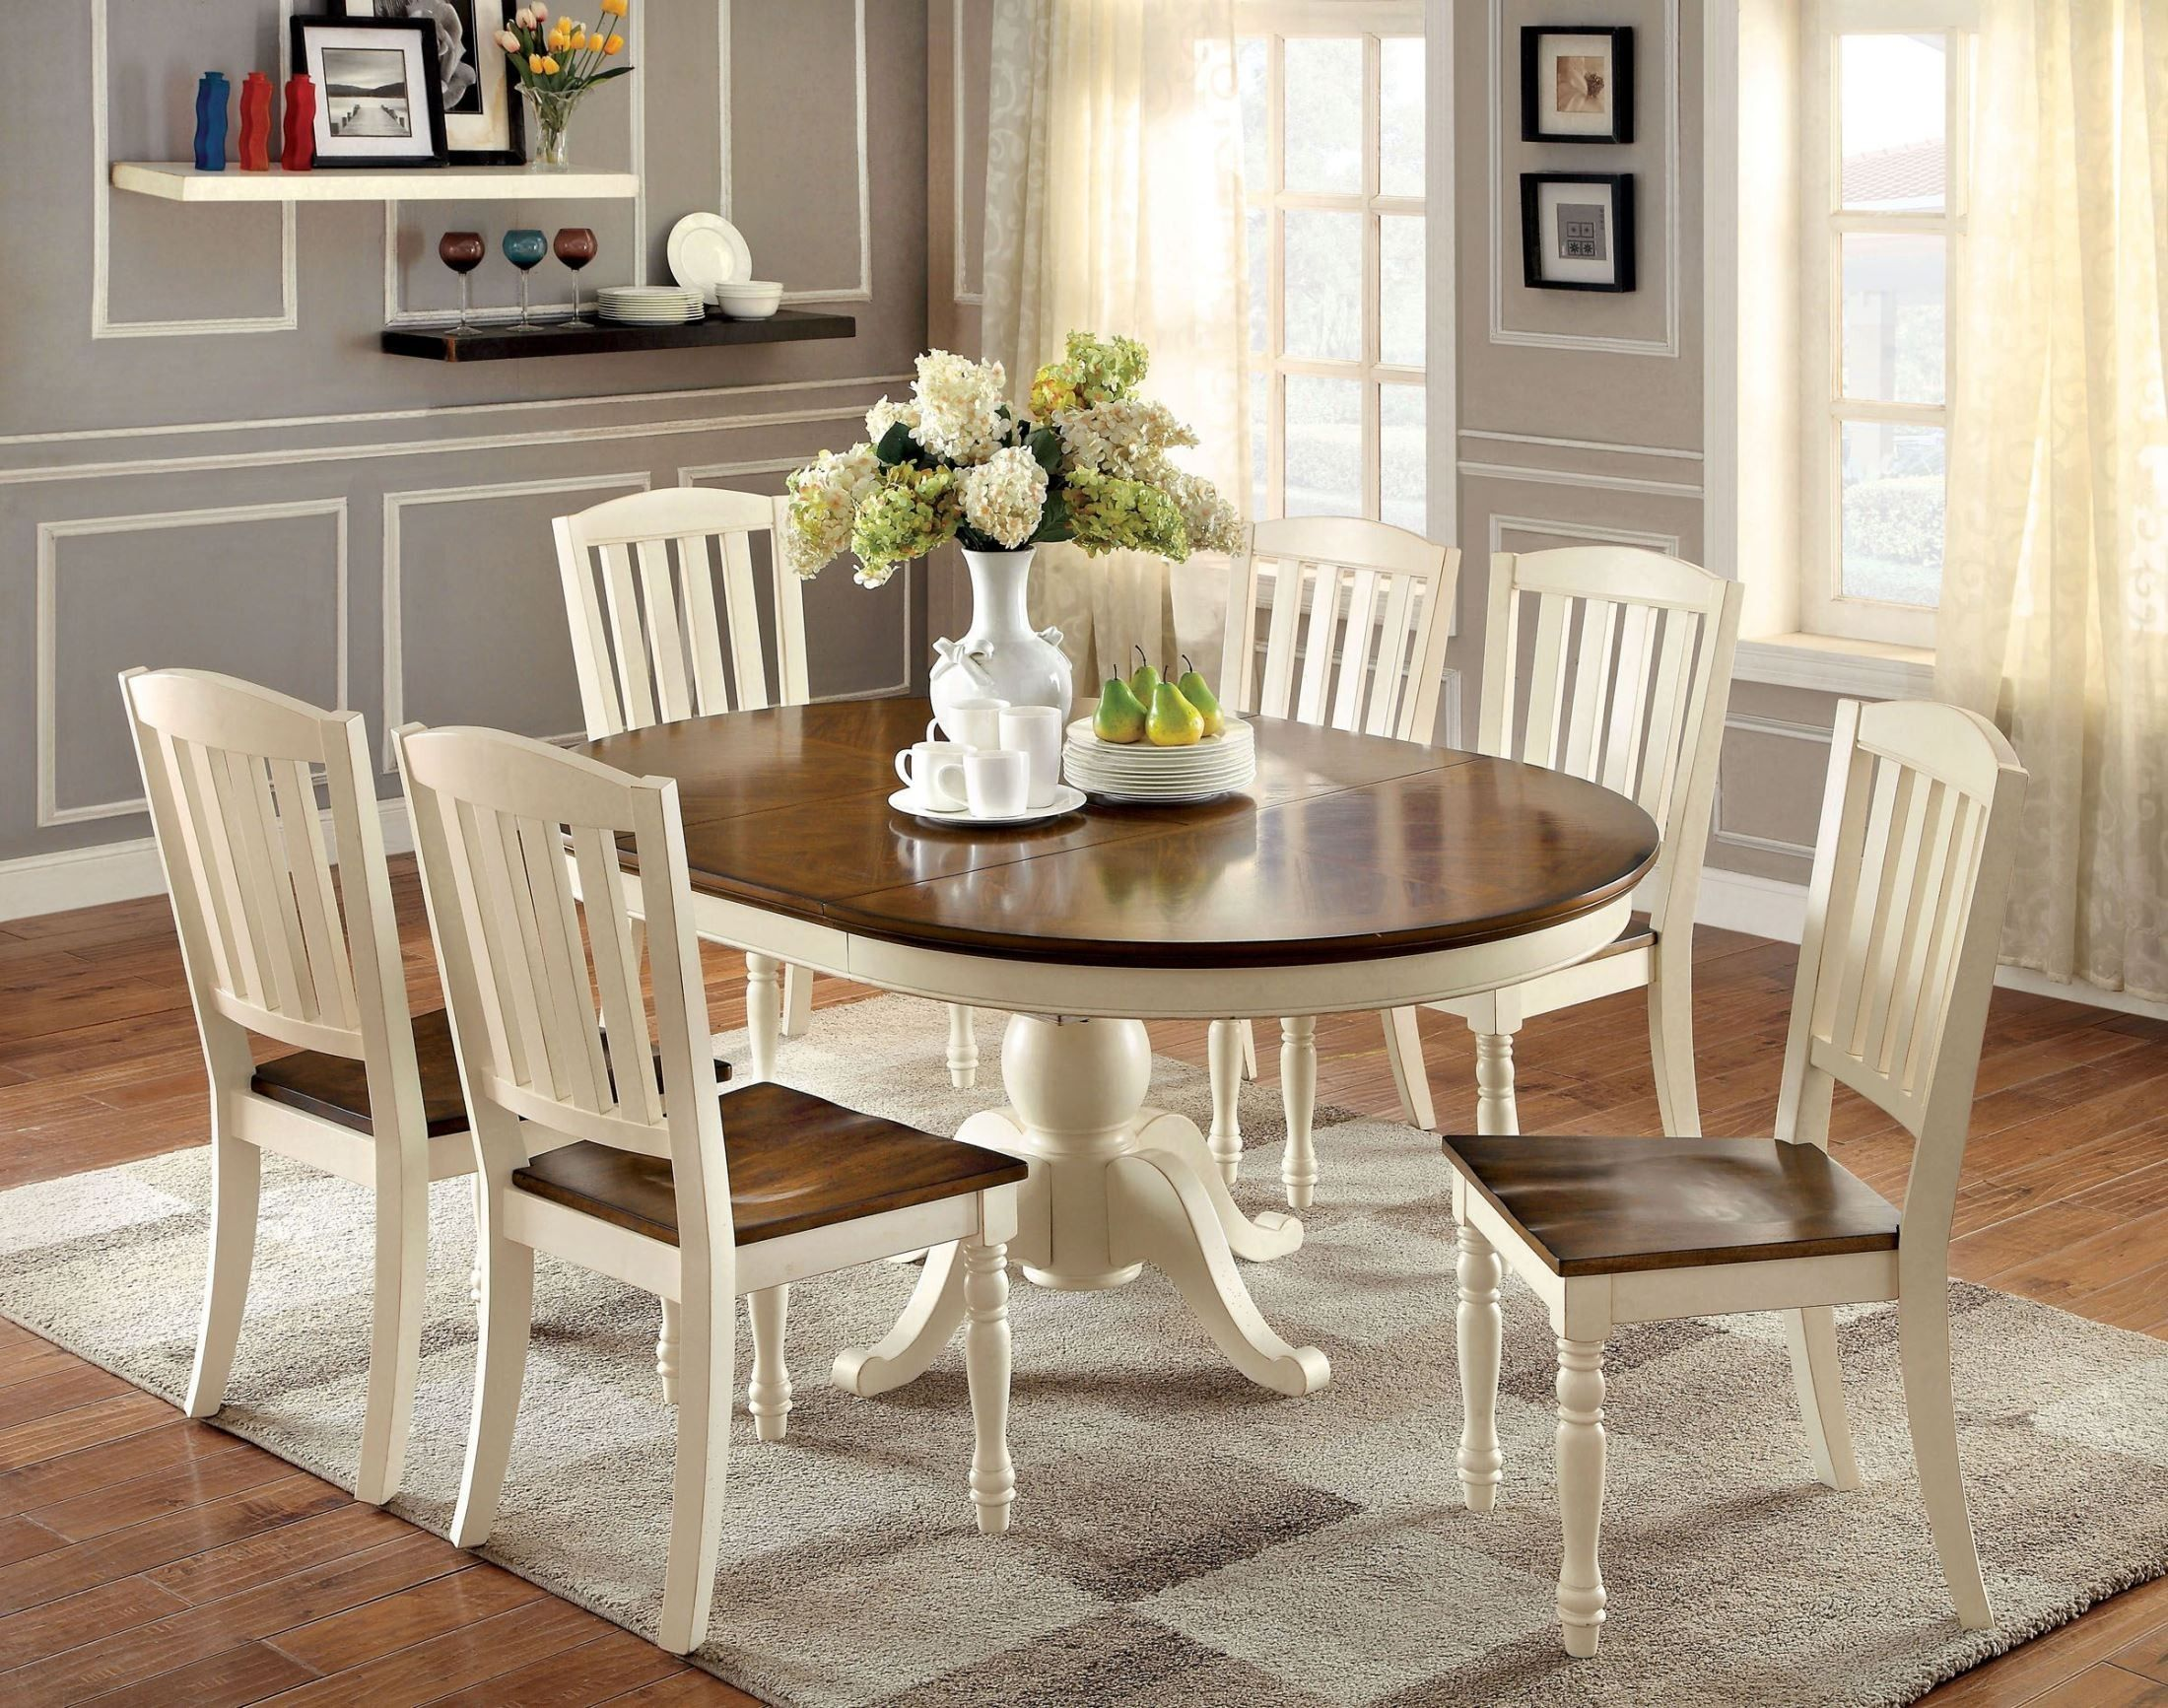 Harrisburg Vintage White And Dark Oak Oval Extendable Dining Room Set In 2021 Oval Table Dining Kitchen Table Settings Dining Room Sets